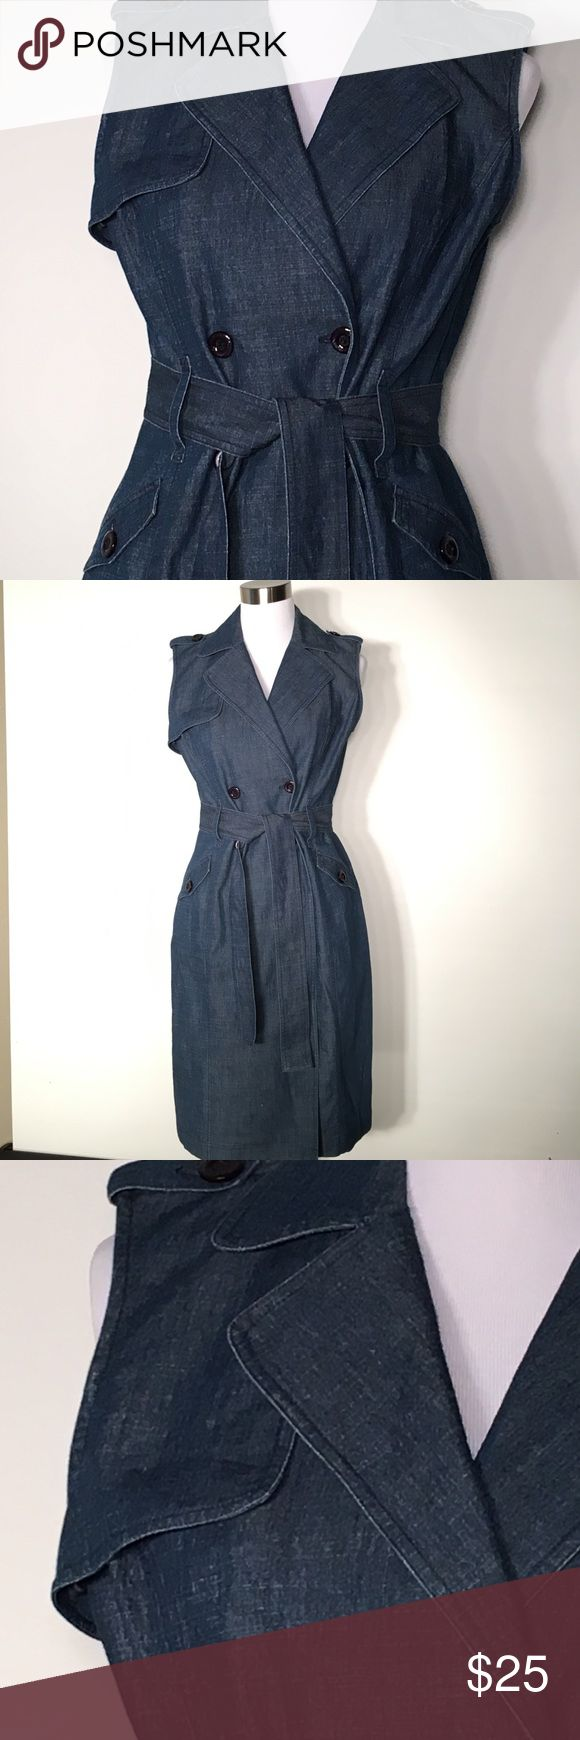 $15 today Spenser front button belted waist Denim Spenser front button belted waist dark Denim Midi dress cotton polyester Spandex. Beautiful front button Denim dress. Buttons are gorgeous with this dress. Very nice quality Denim. Size 10 Spense Dresses Midi